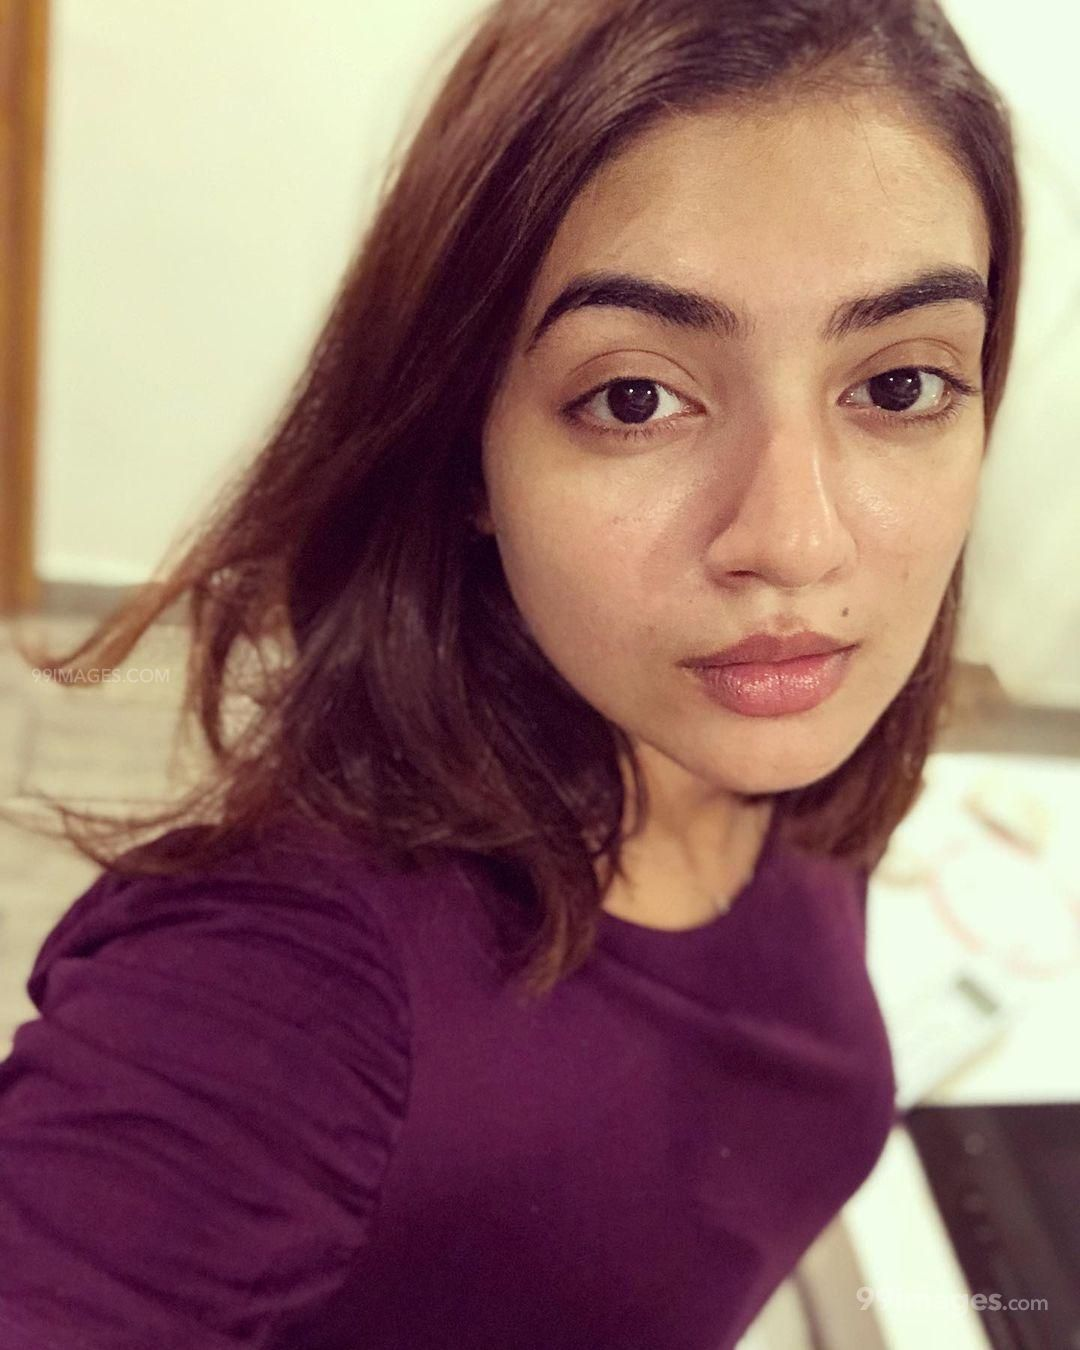 Nazriya Nazim HD Wallpapers (Desktop Background / Android / iPhone) (1080p, 4k) (224556) - Nazriya Nazim